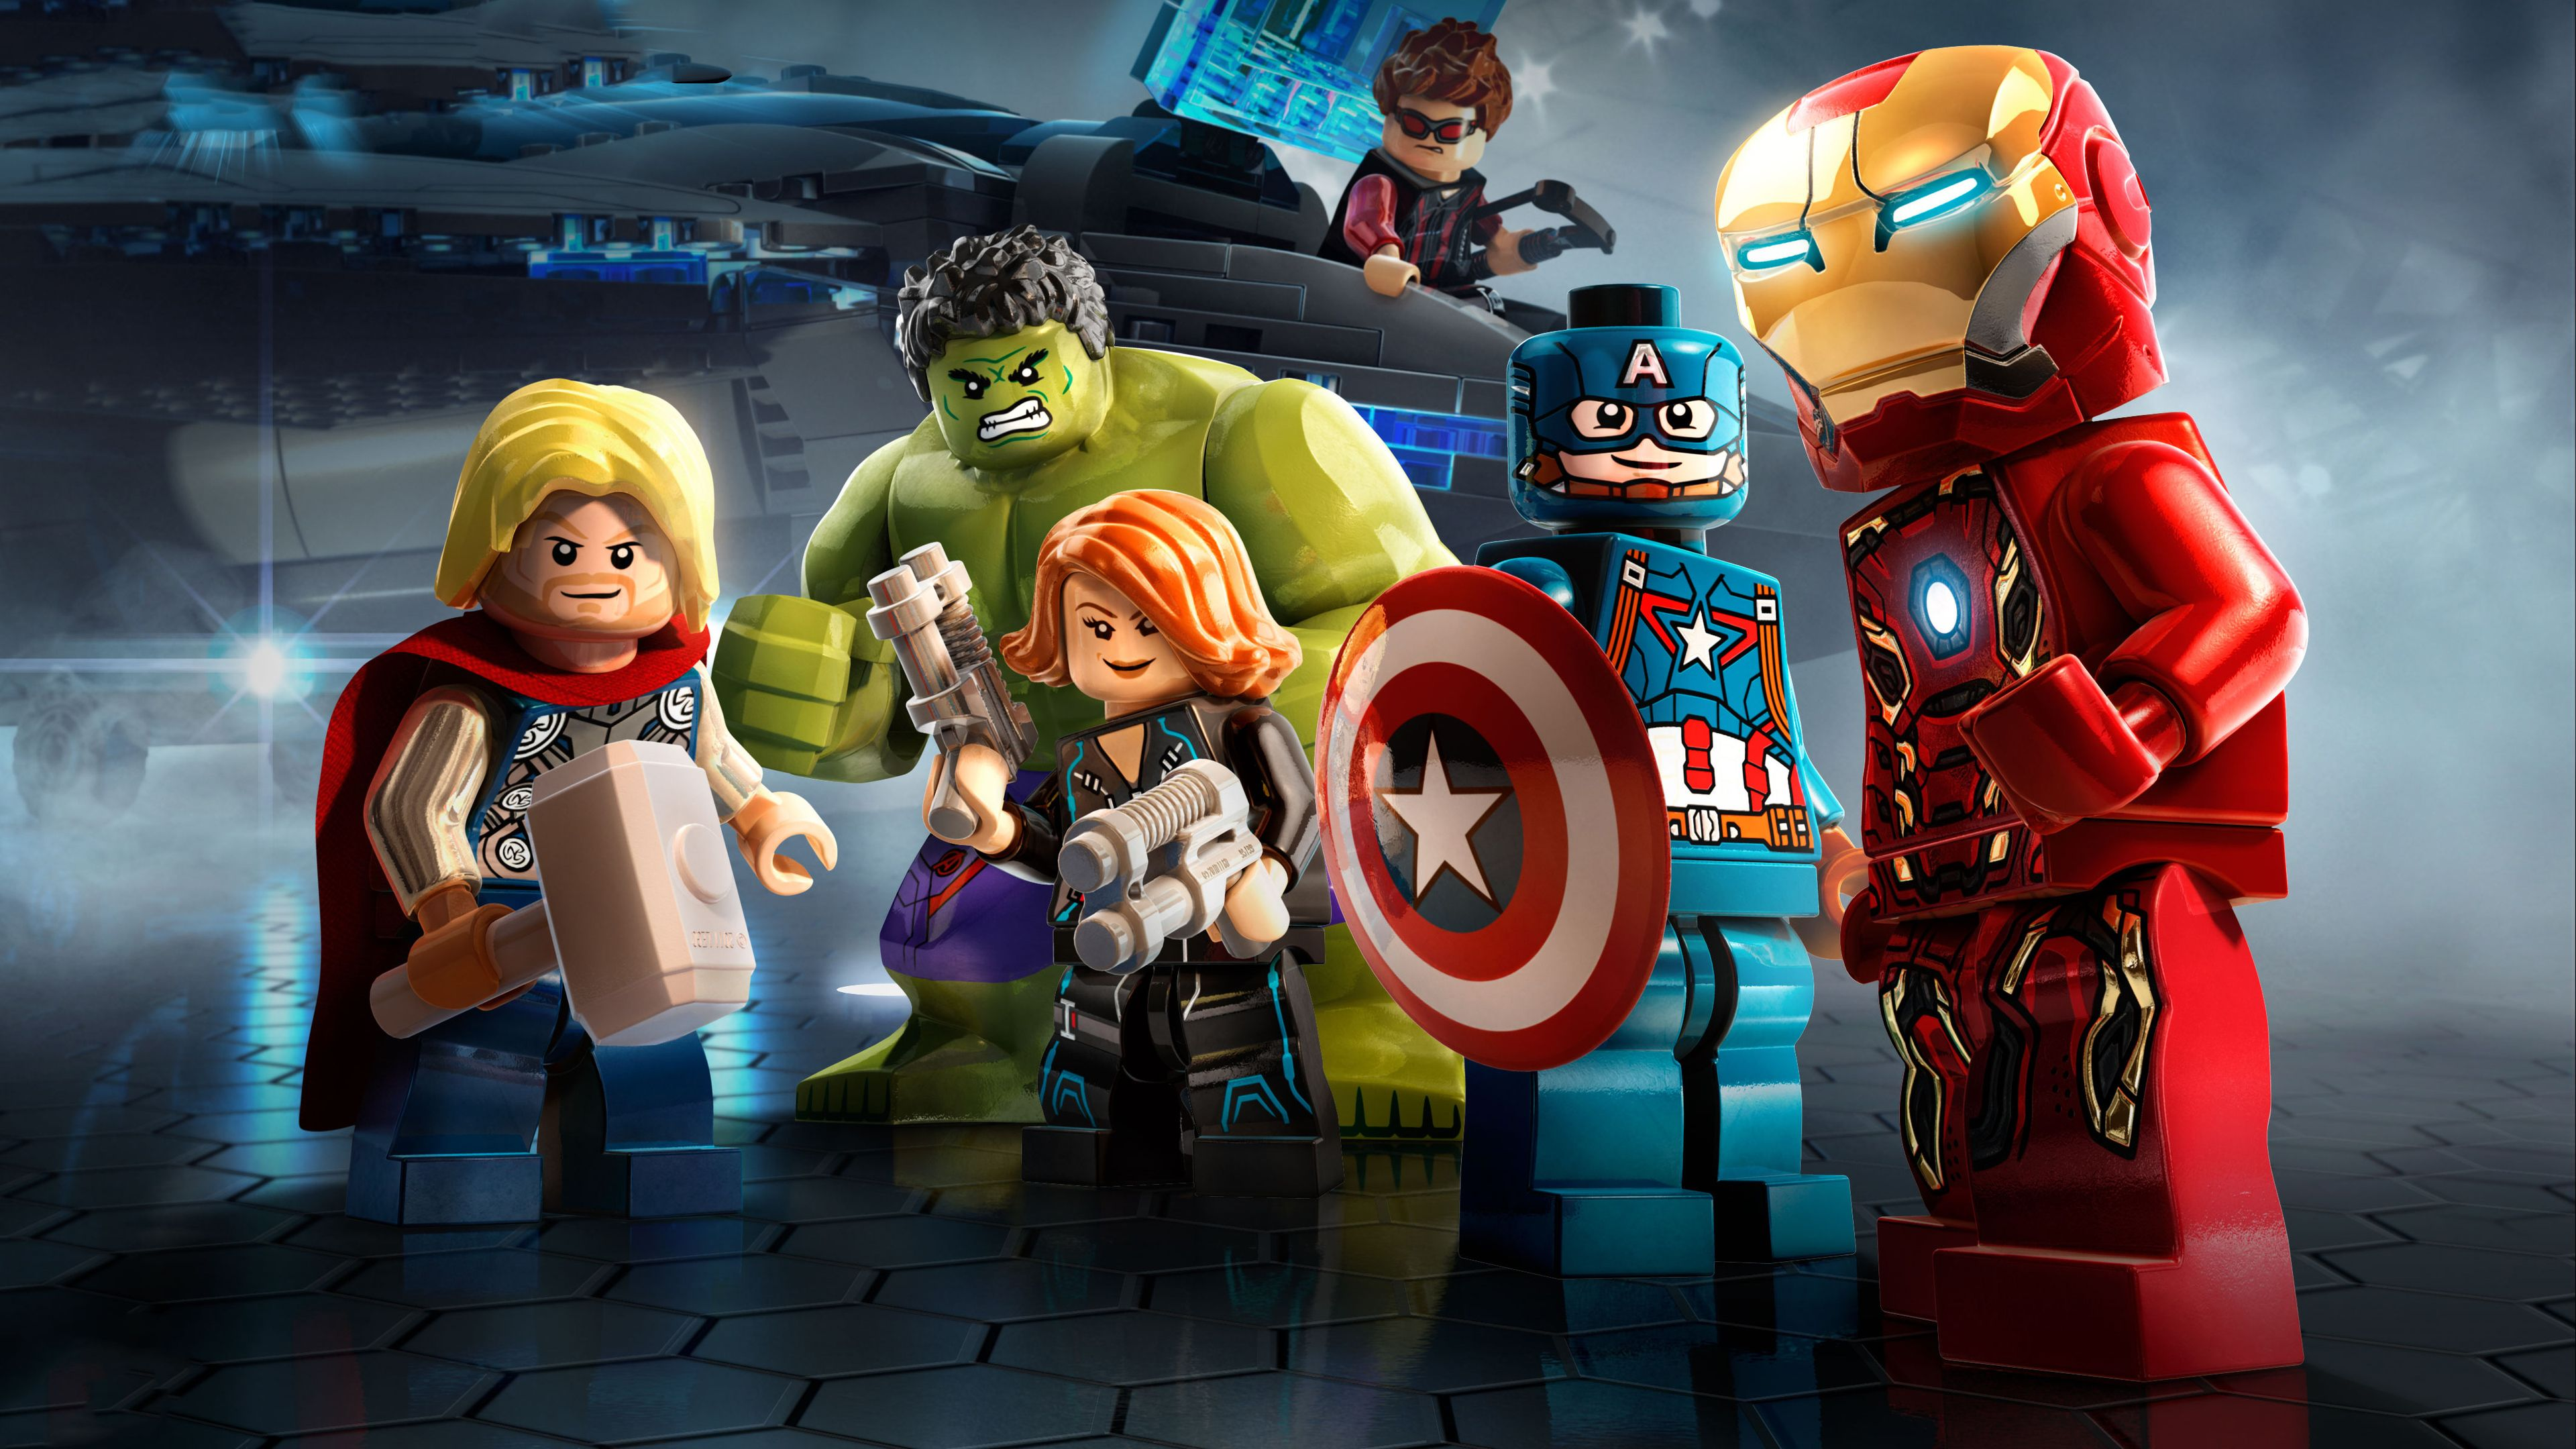 marvel avengers lego 4k superheroes wallpapers lego